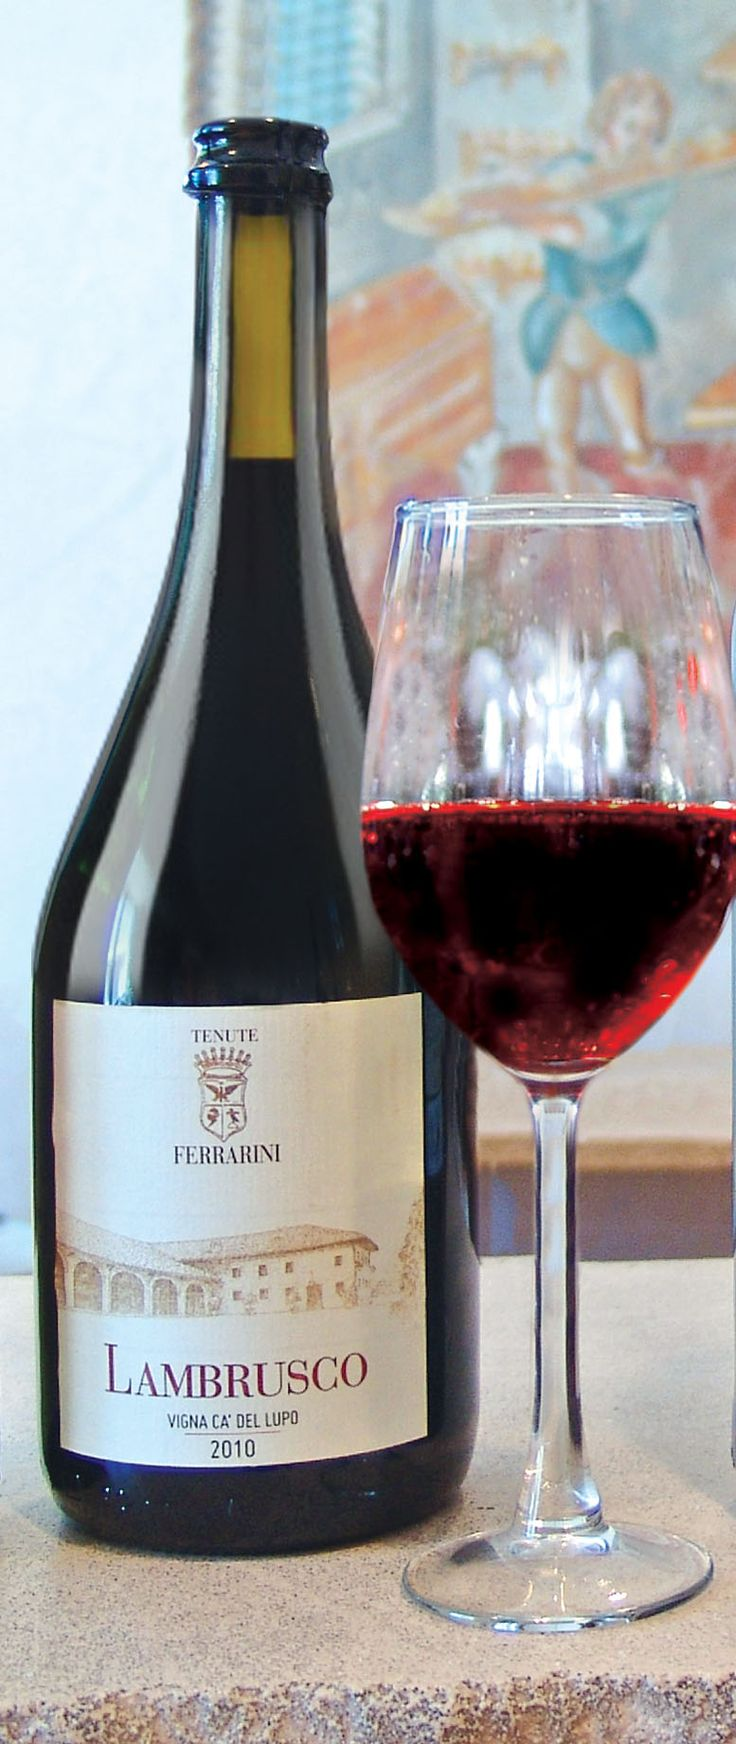 Ferrarini Lambrusco is a bright, vibrant, medium-bodied red brimming with aromas and flavors of bright blueberry, brambly blackberry and tart cherry with a crisp, nutty, and long-lasting finish.